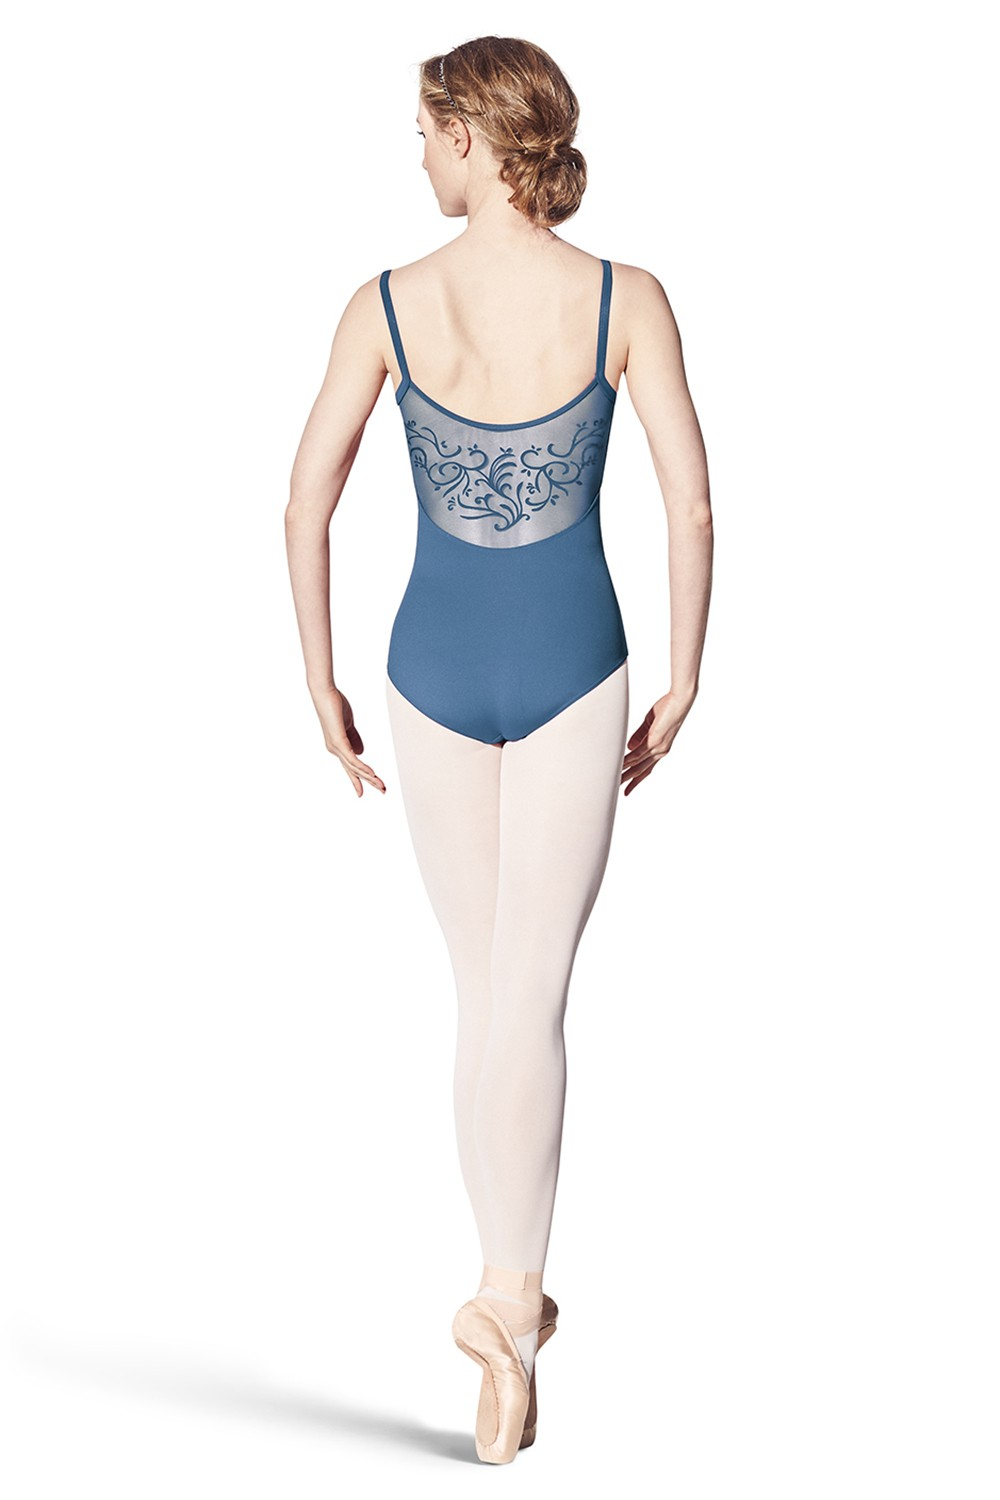 Alair Women's Dance Leotards